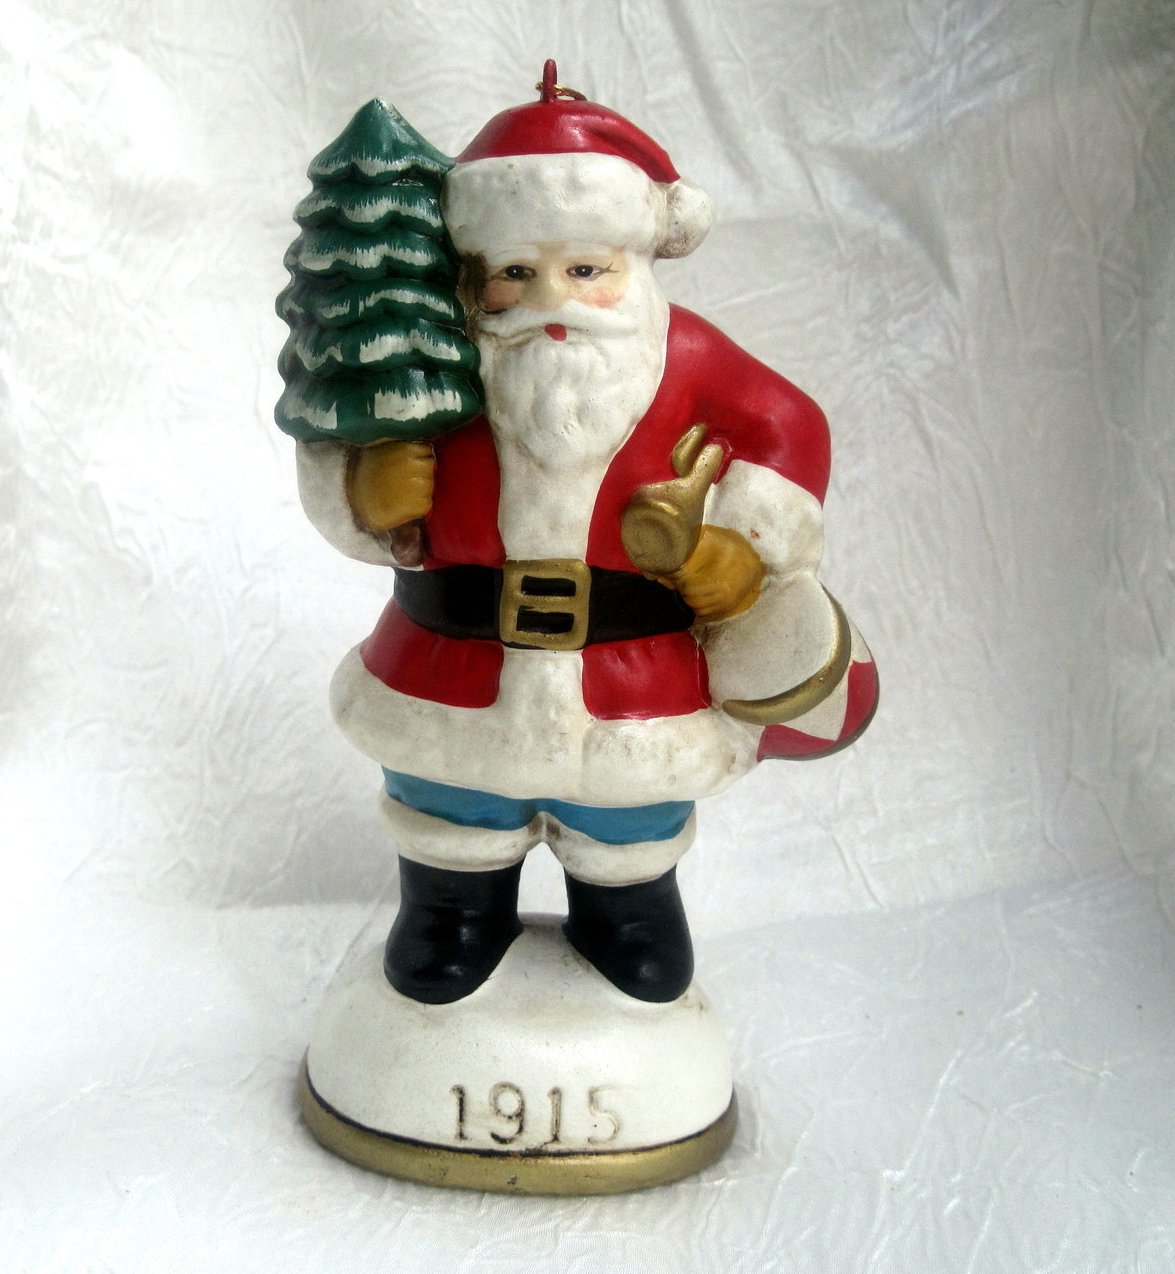 Christmas Eve Inc Santa Claus Figurine Ornament 1915